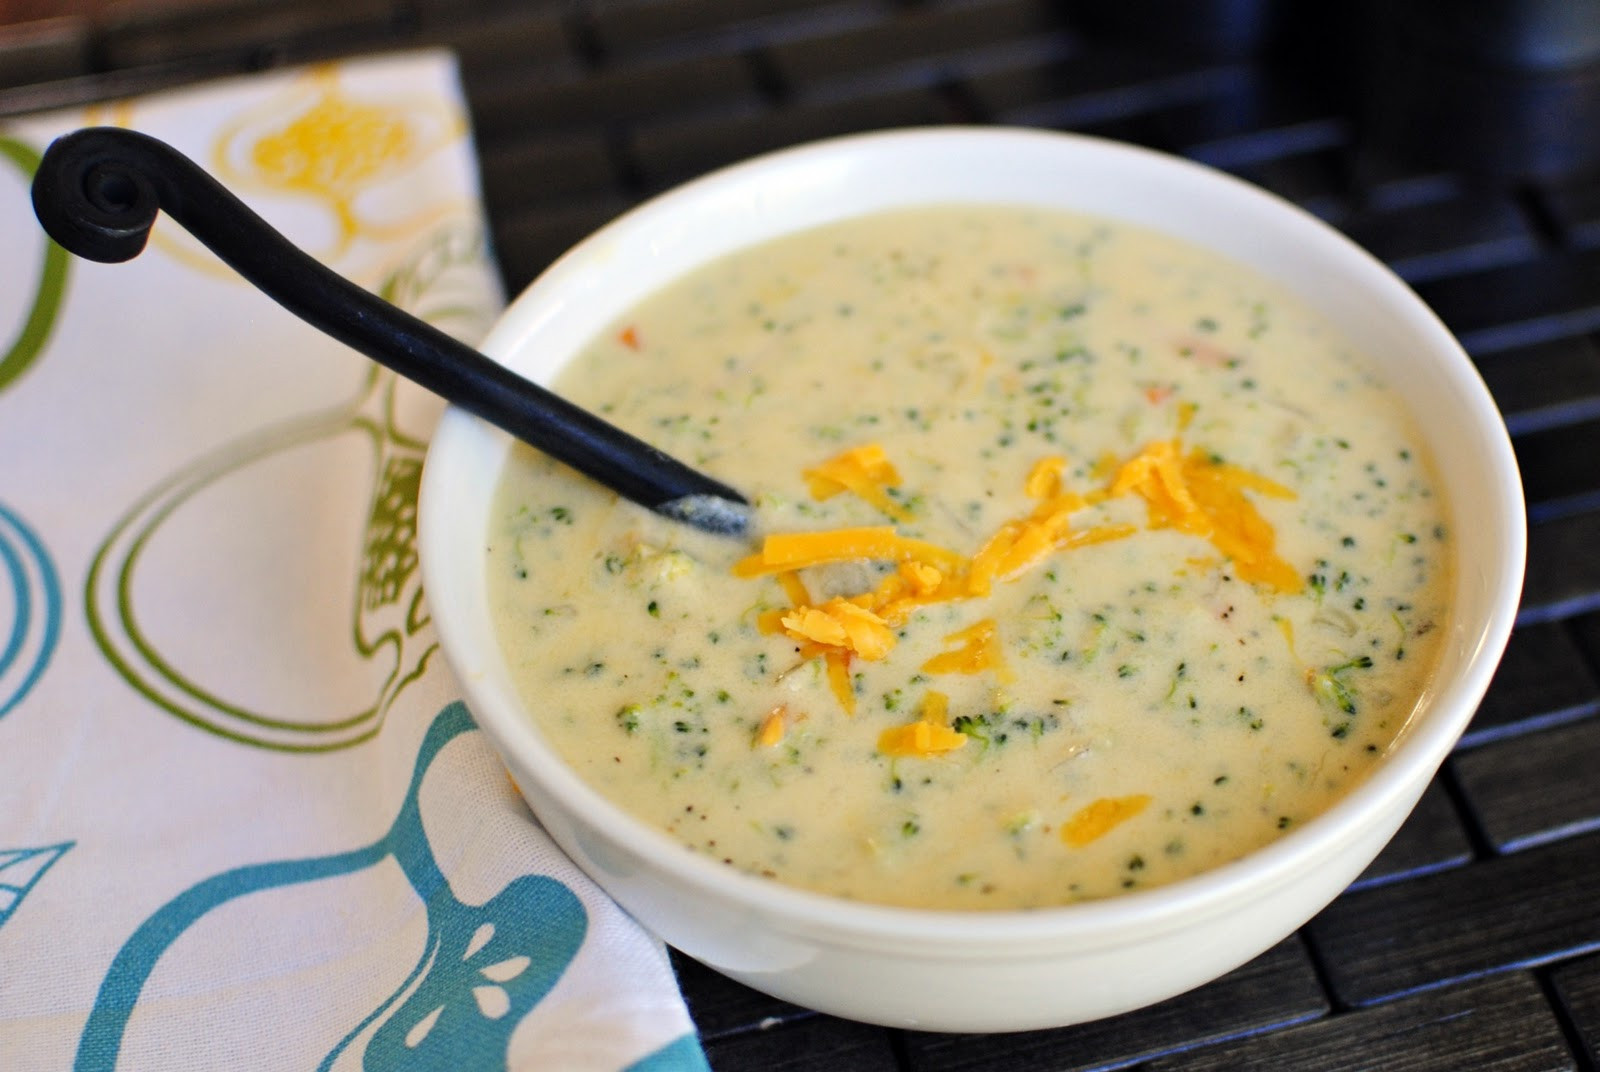 Broccoli And Cheddar Soup  Simply Scratch Simple Broccoli and Cheddar Soup with Warm